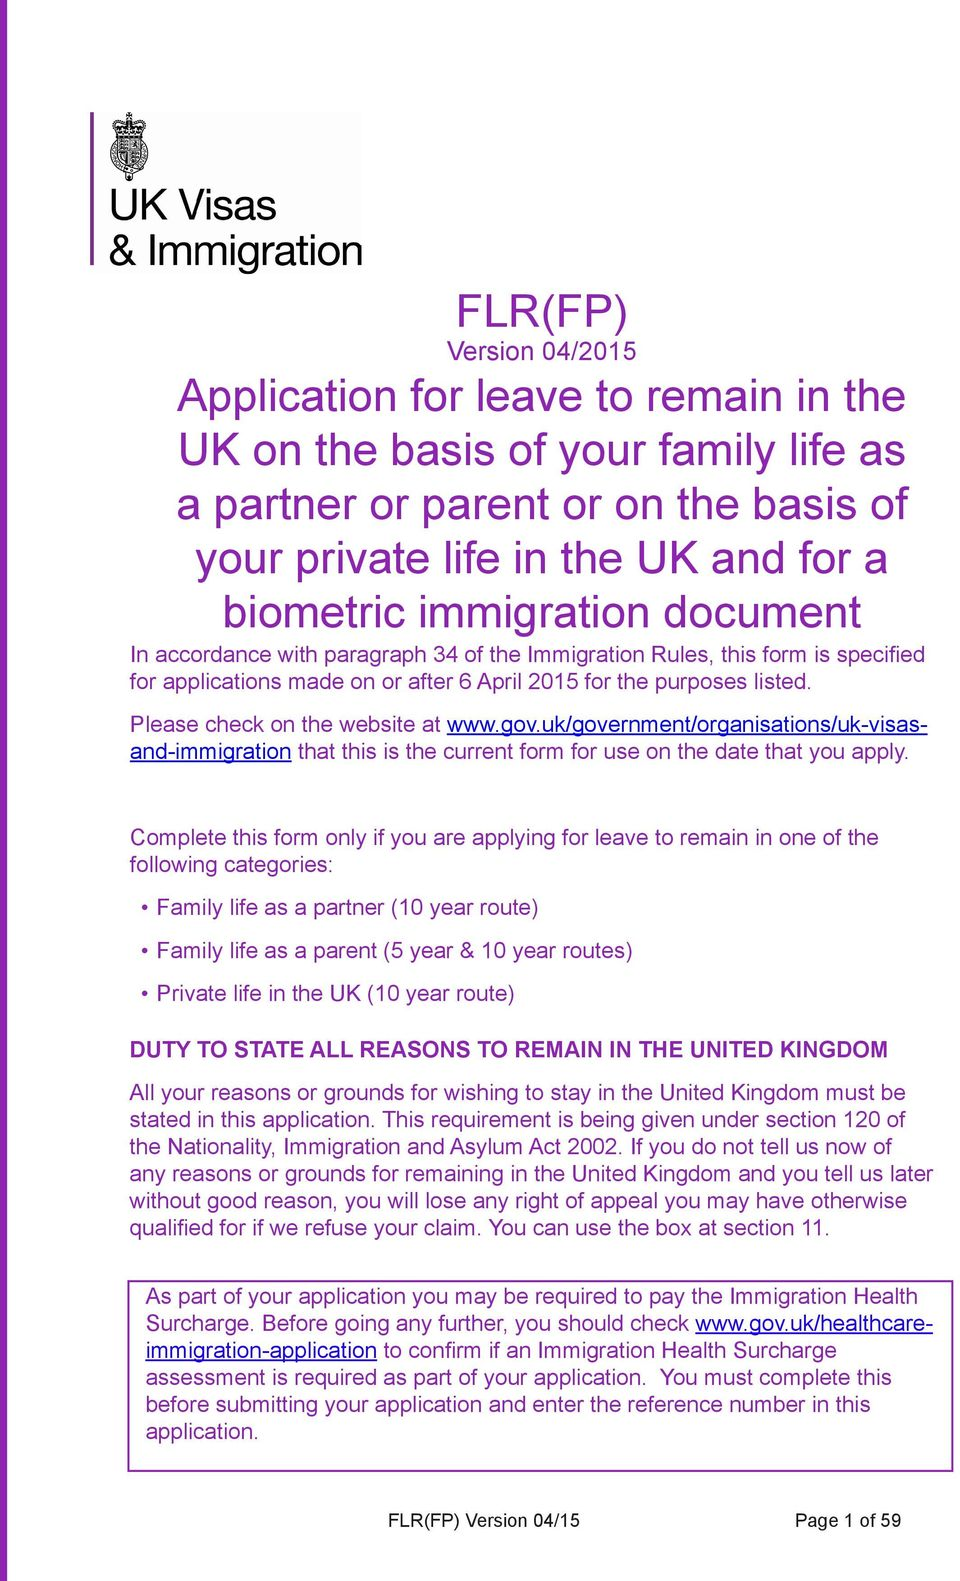 Please check on the website at www.gov.uk/government/organisations/uk-visasand-immigration that this is the current form for use on the date that you apply.